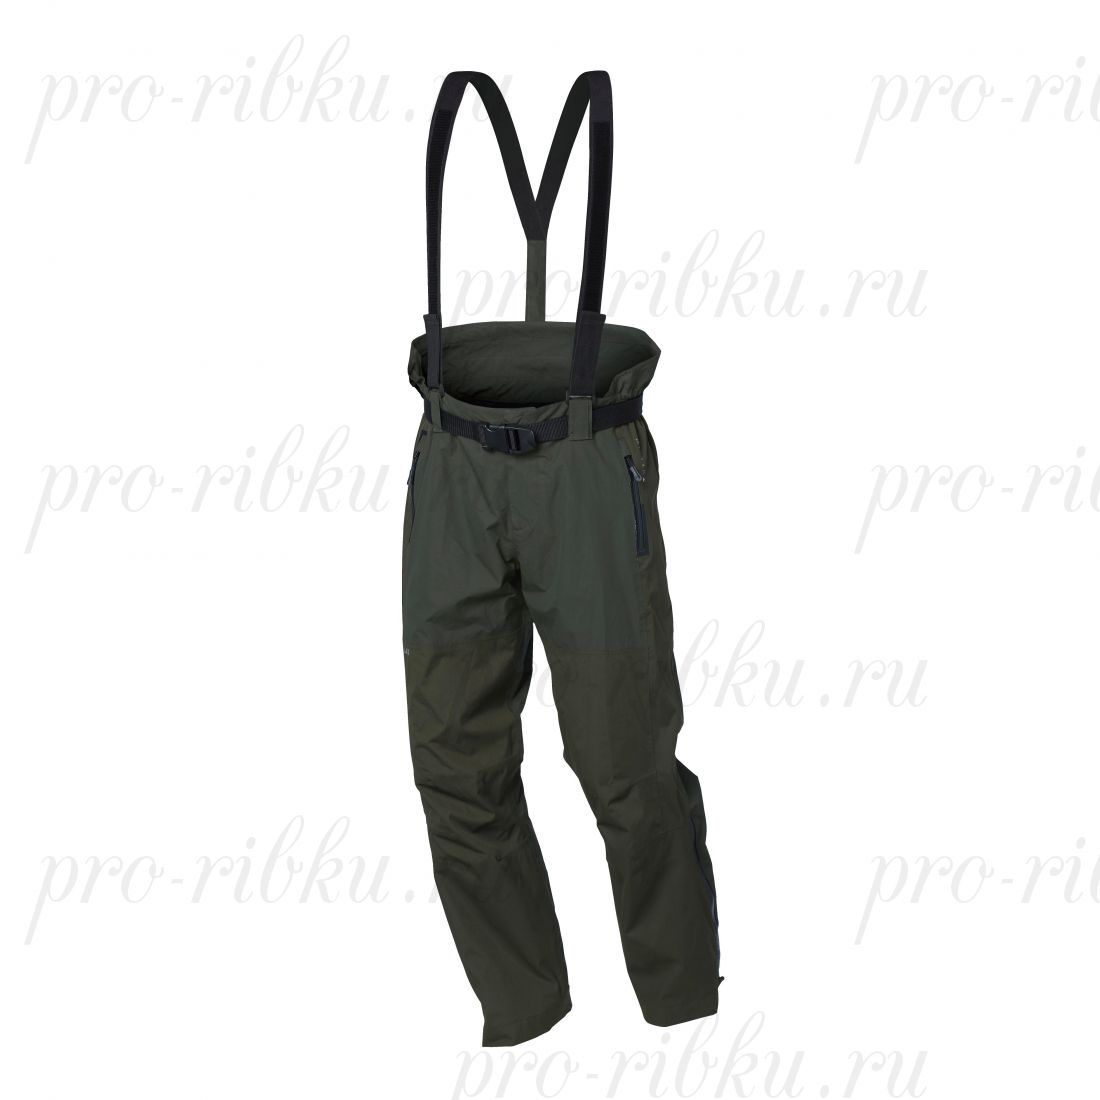 Брюки Westin W4 2-Layer Pant L Two Leaf Green размер L